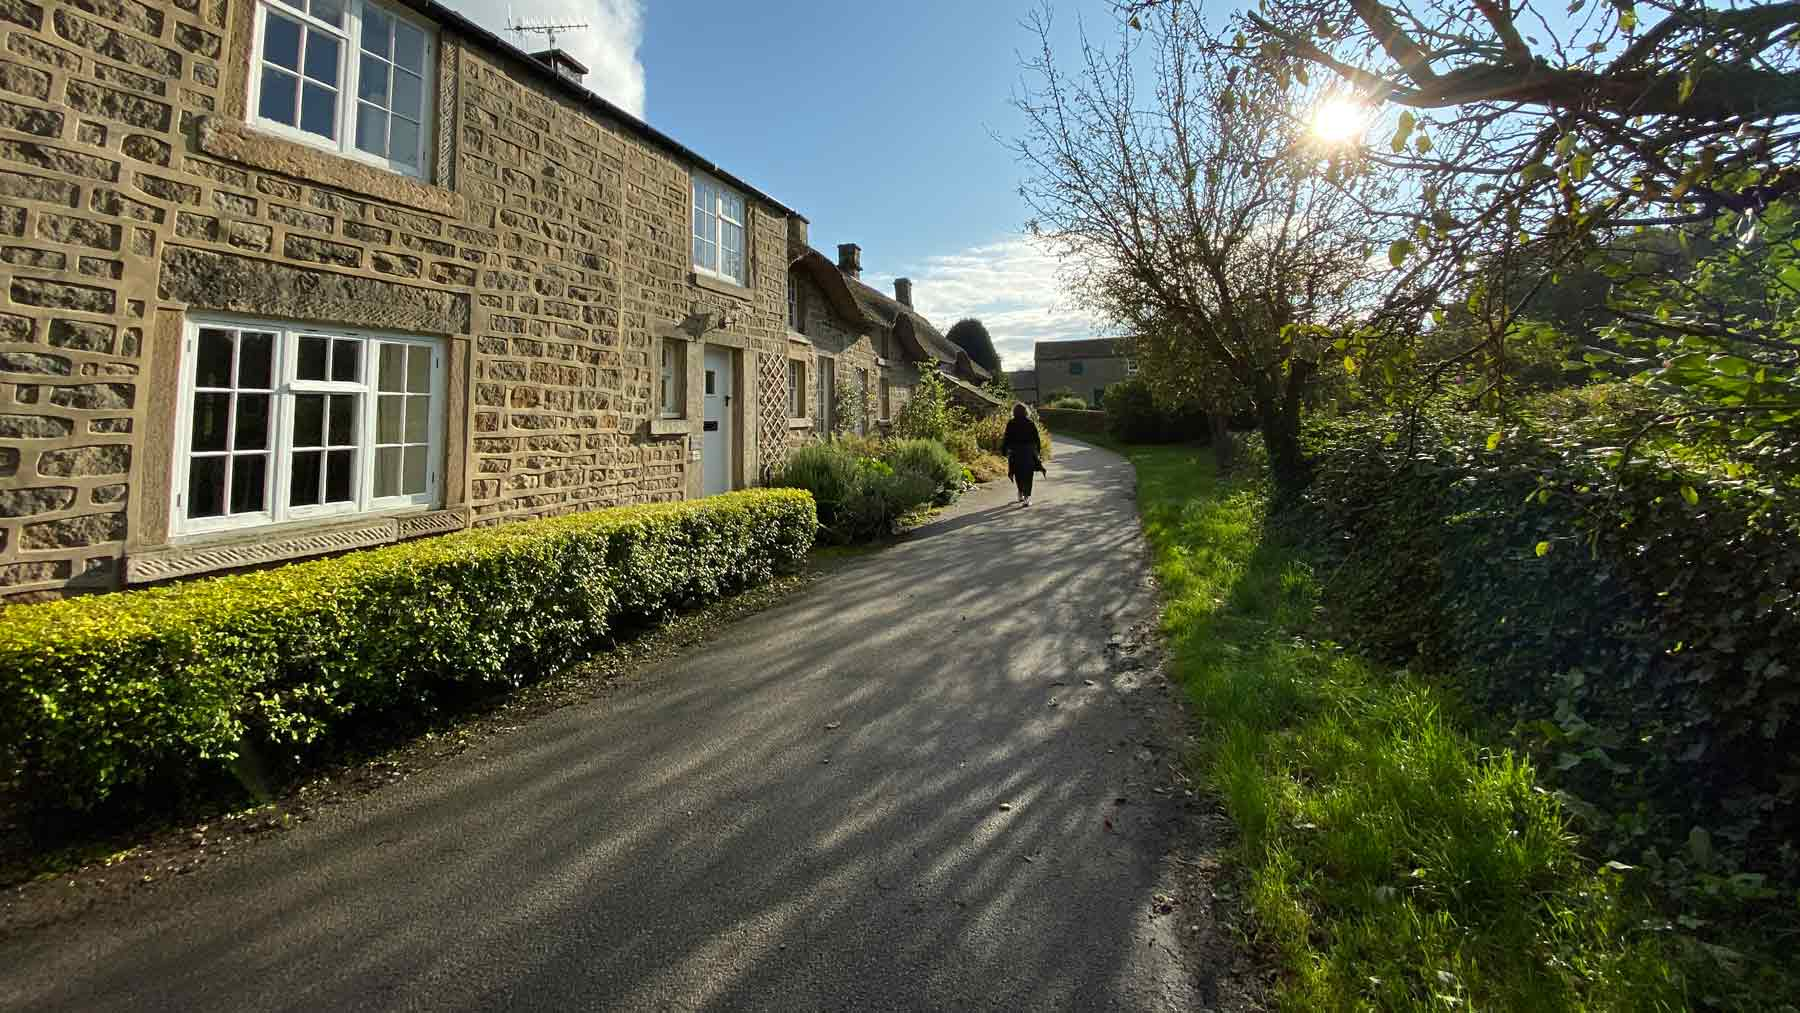 Stone cottages in Baslow, Peak District